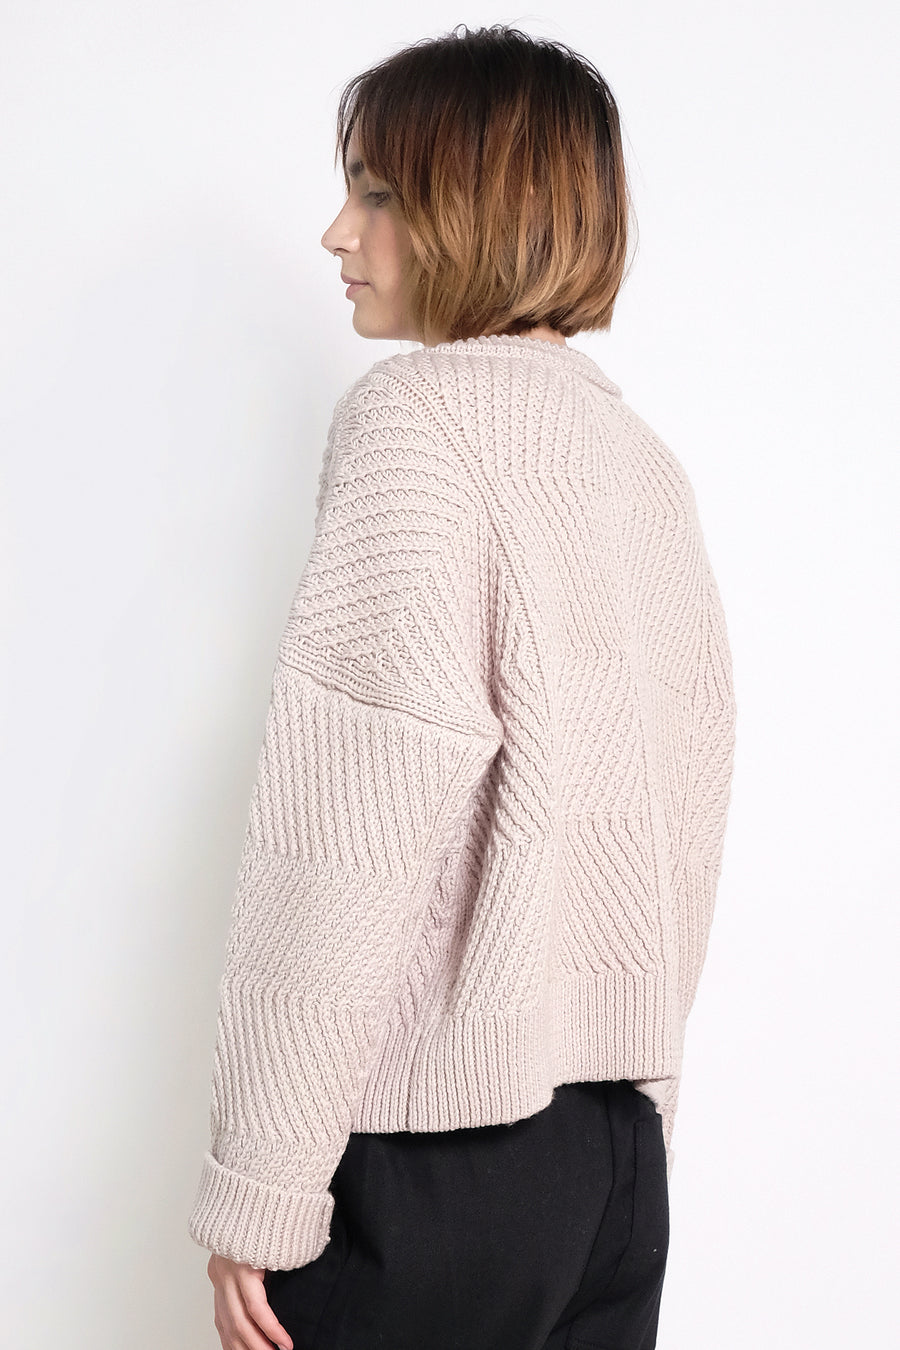 Chalk Bevel Sweater